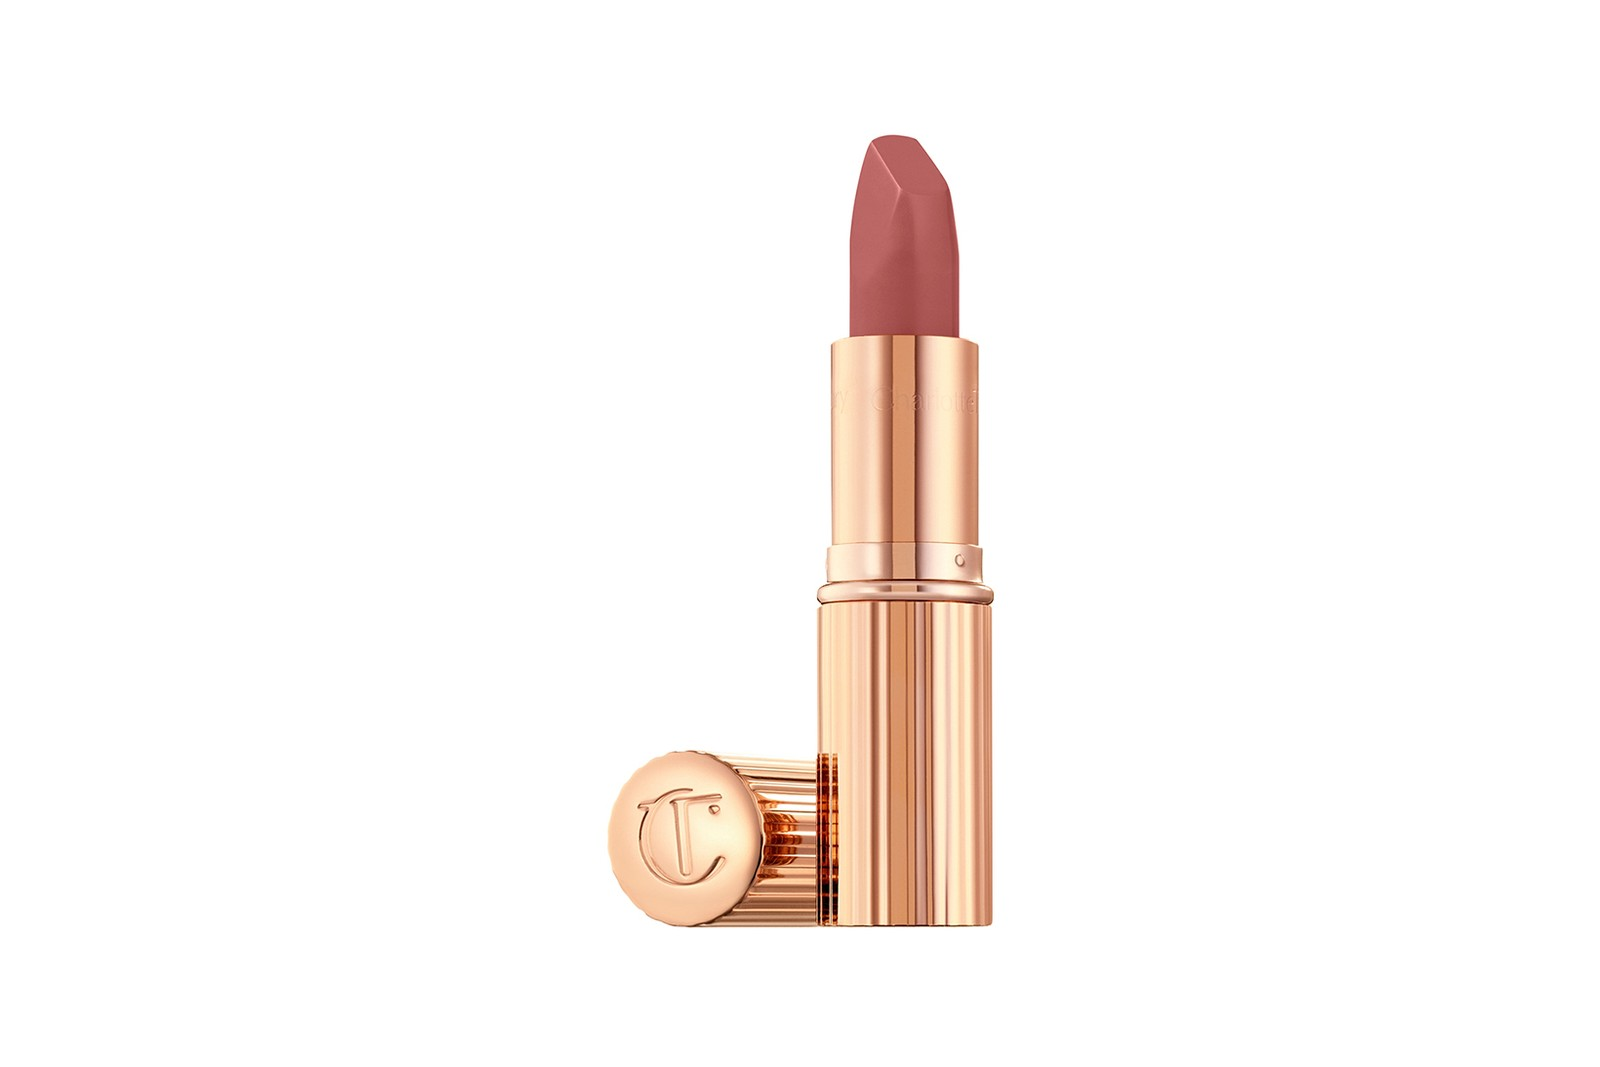 charlotte tilbury new pillow talk collection eyeshadows lipsticks blushes eyeliner lip liner highlighter review